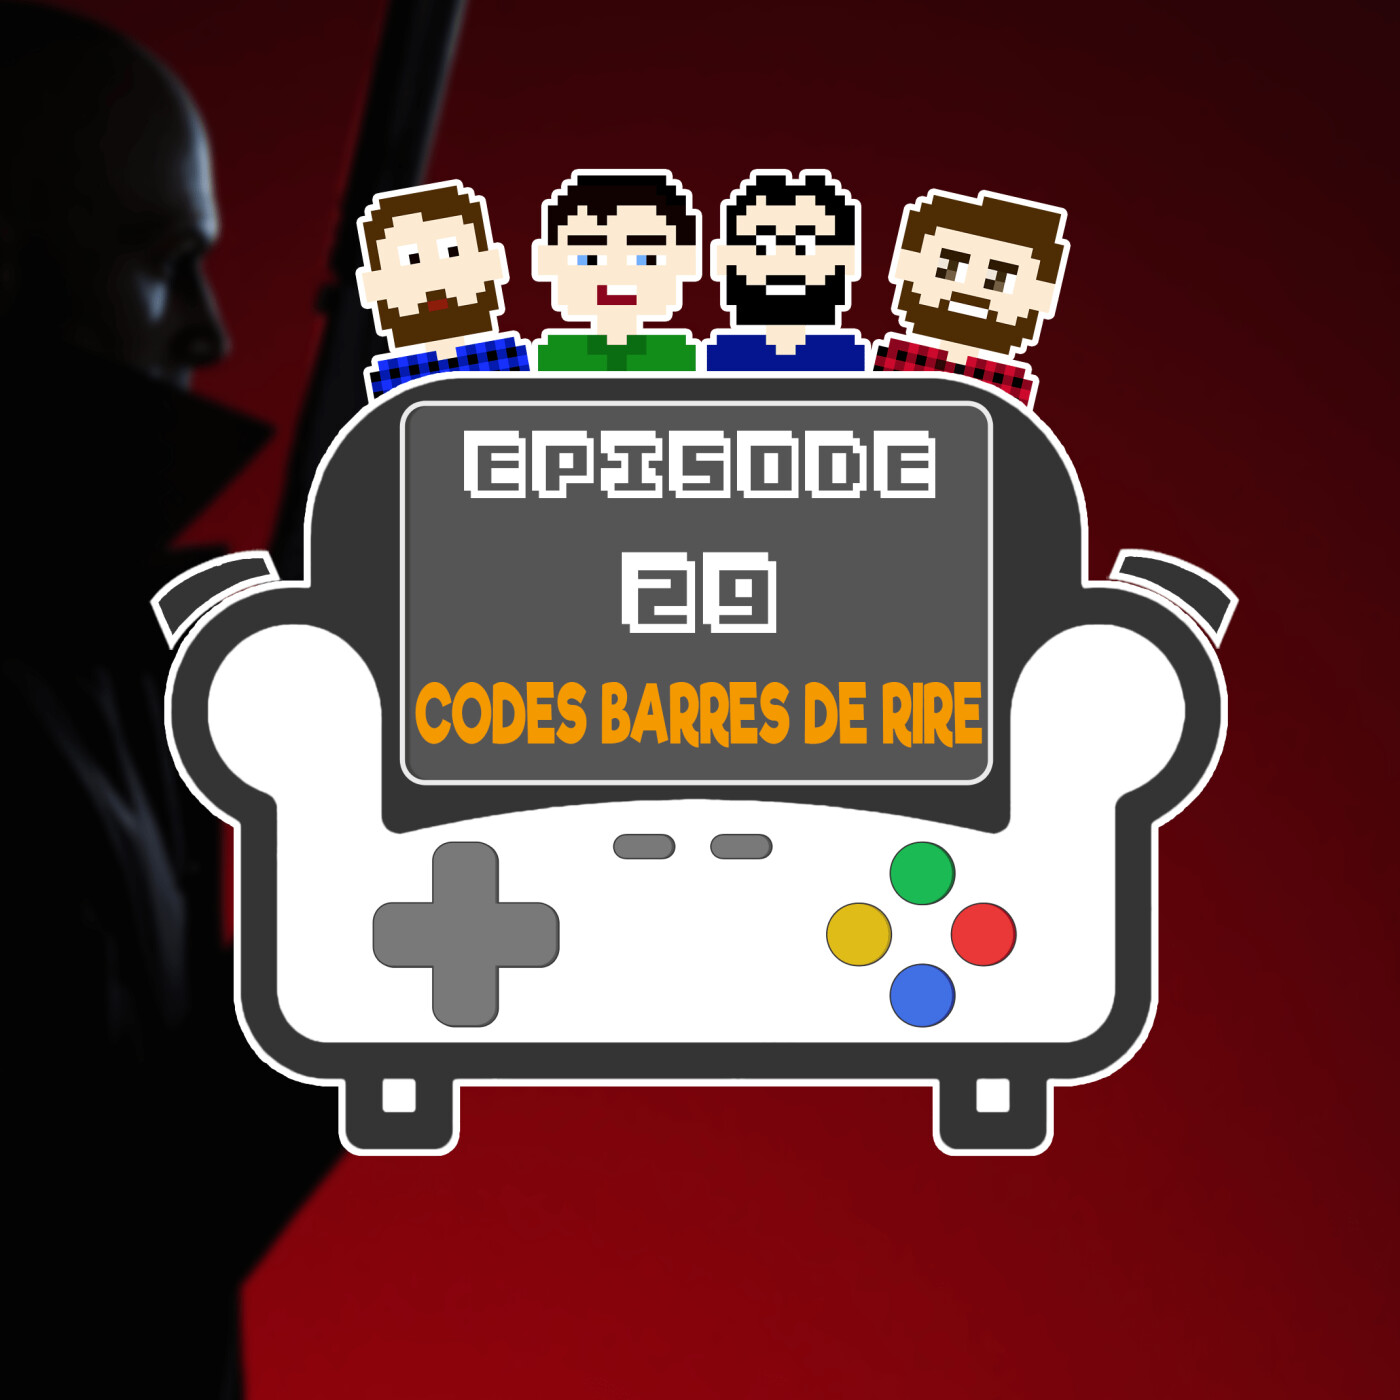 Episode 29 - Des codes barres de rire